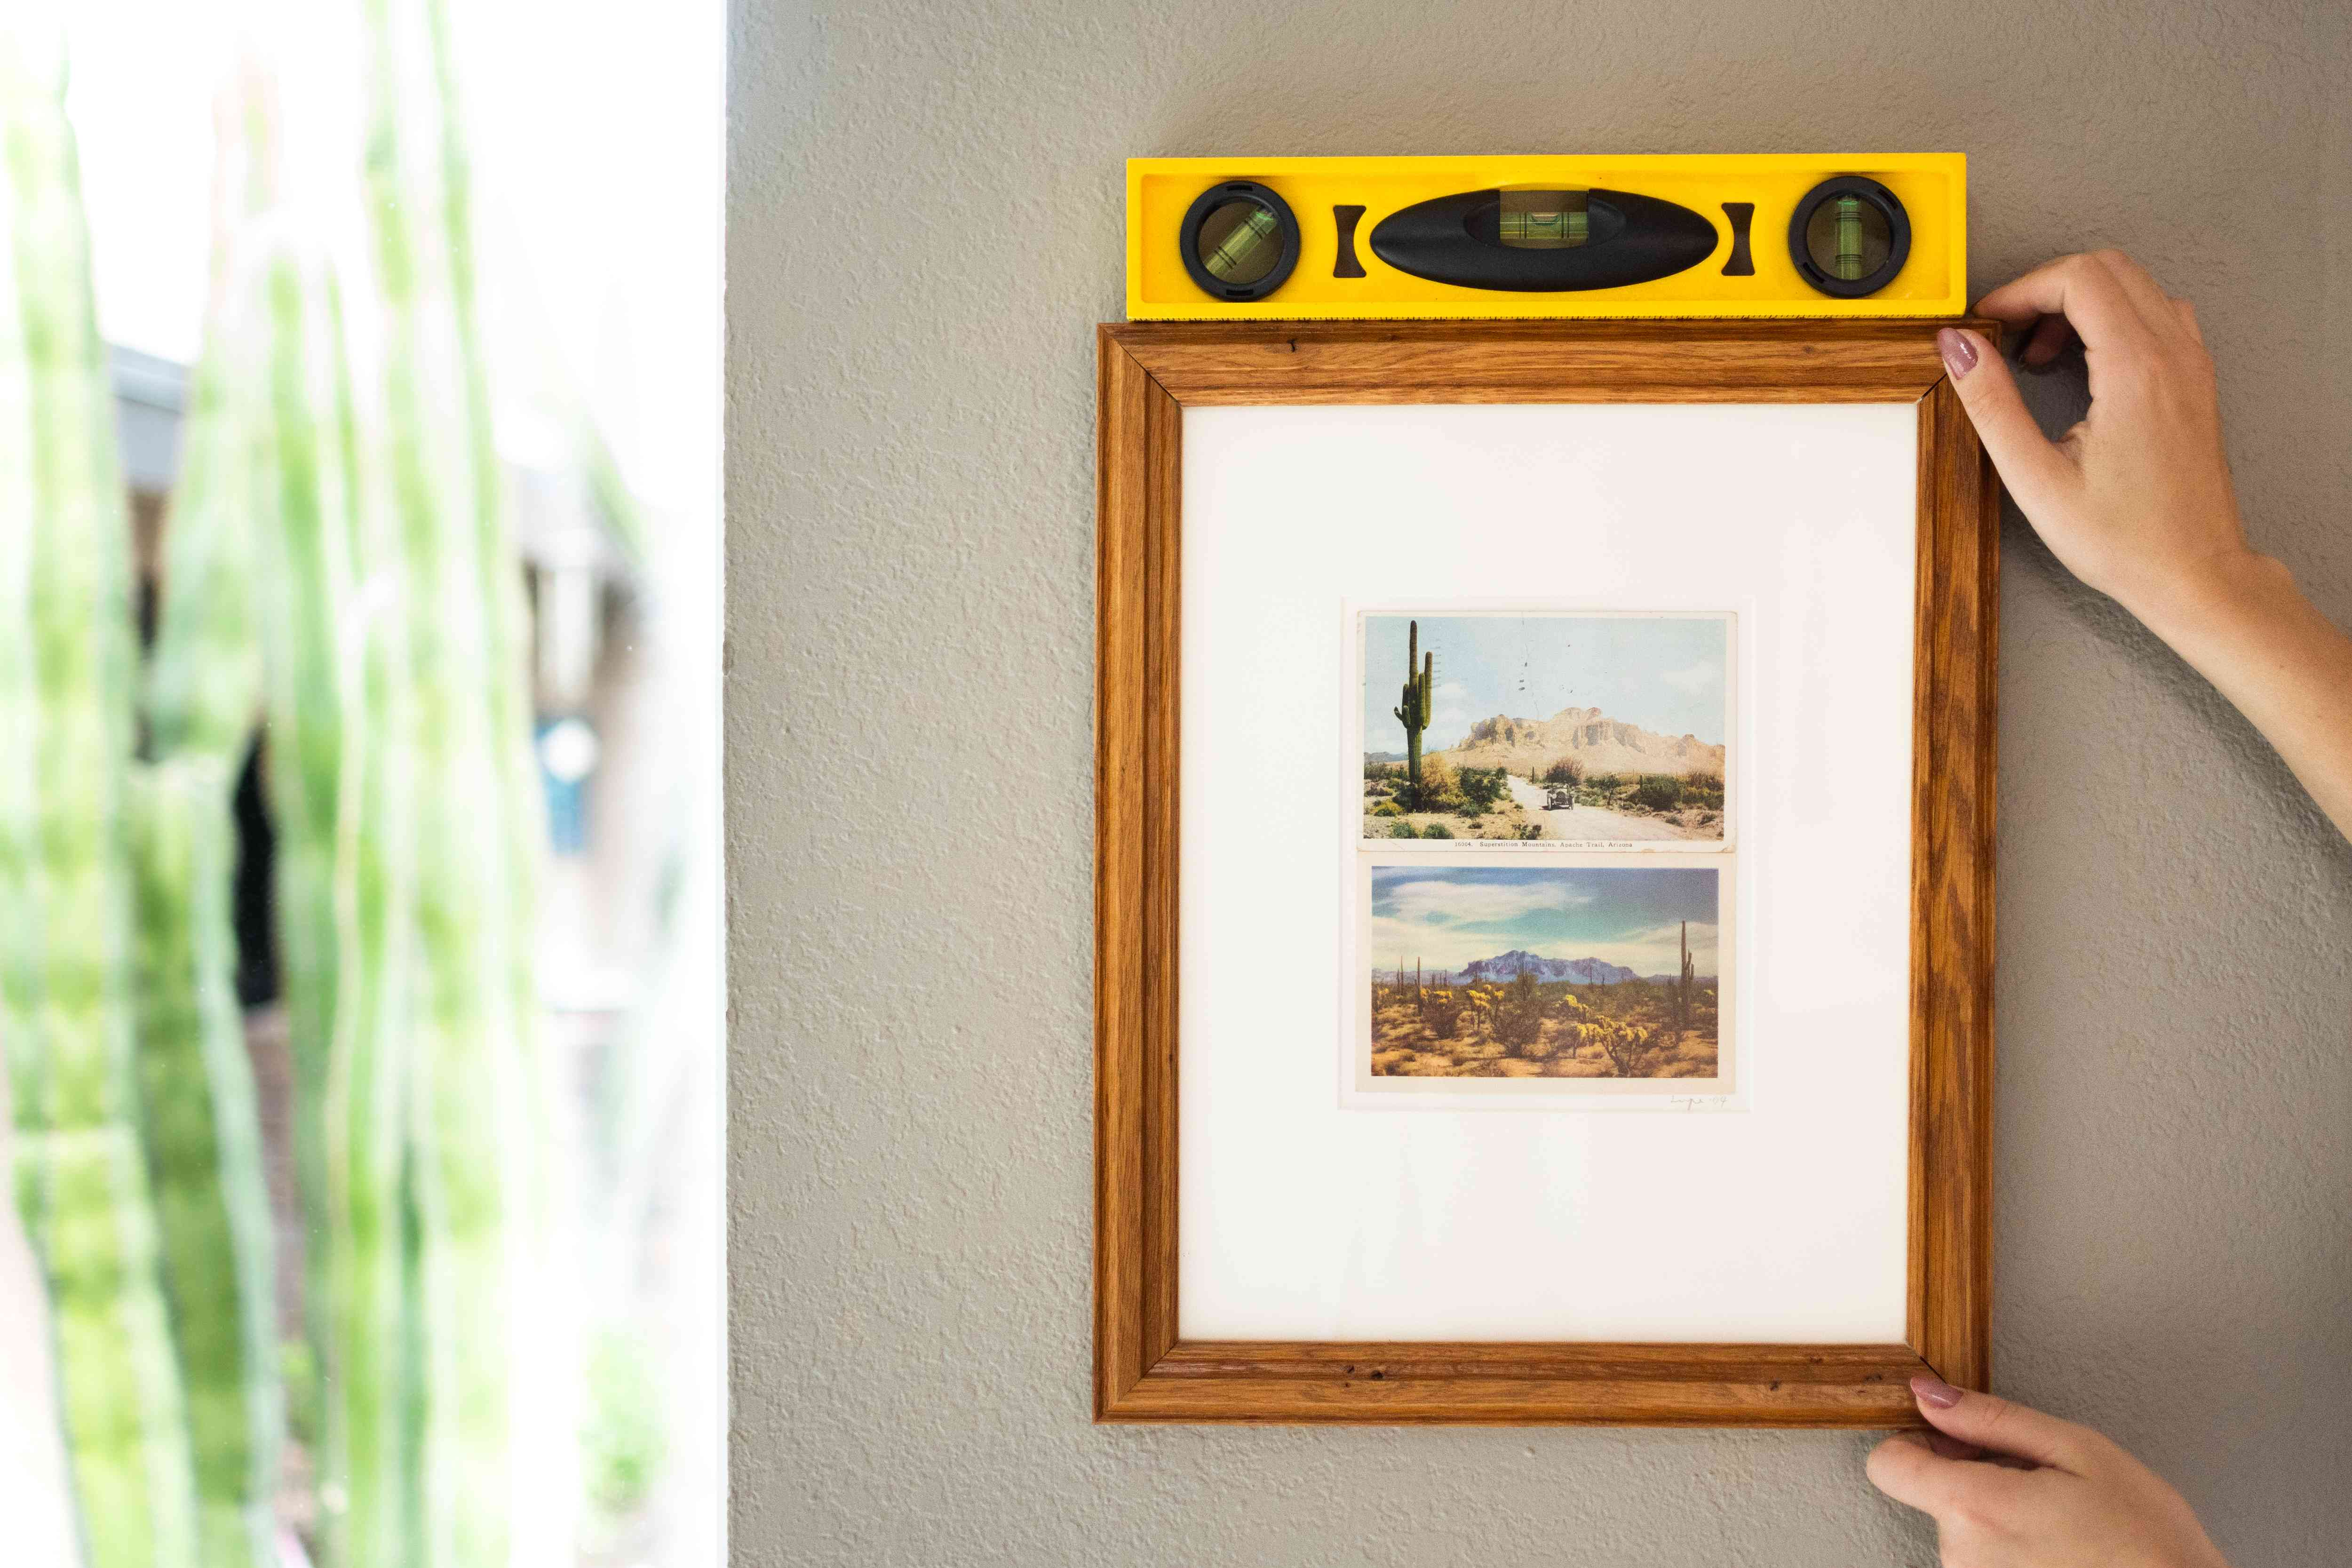 Picture frame placed on wall with yellow level on top